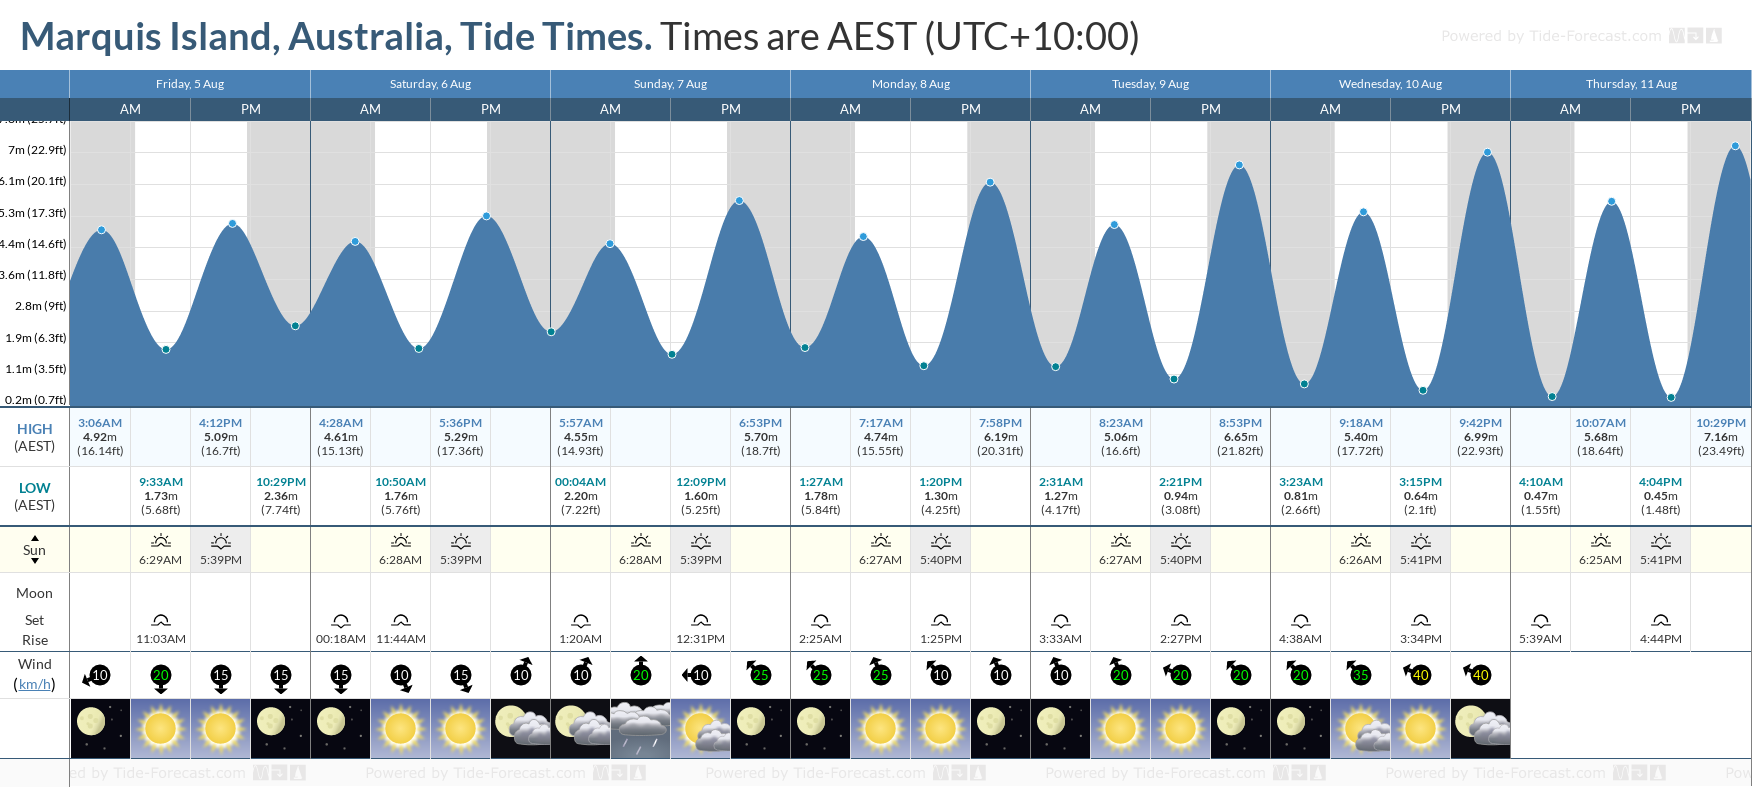 Marquis Island, Australia Tide Chart including high and low tide tide times for the next 7 days